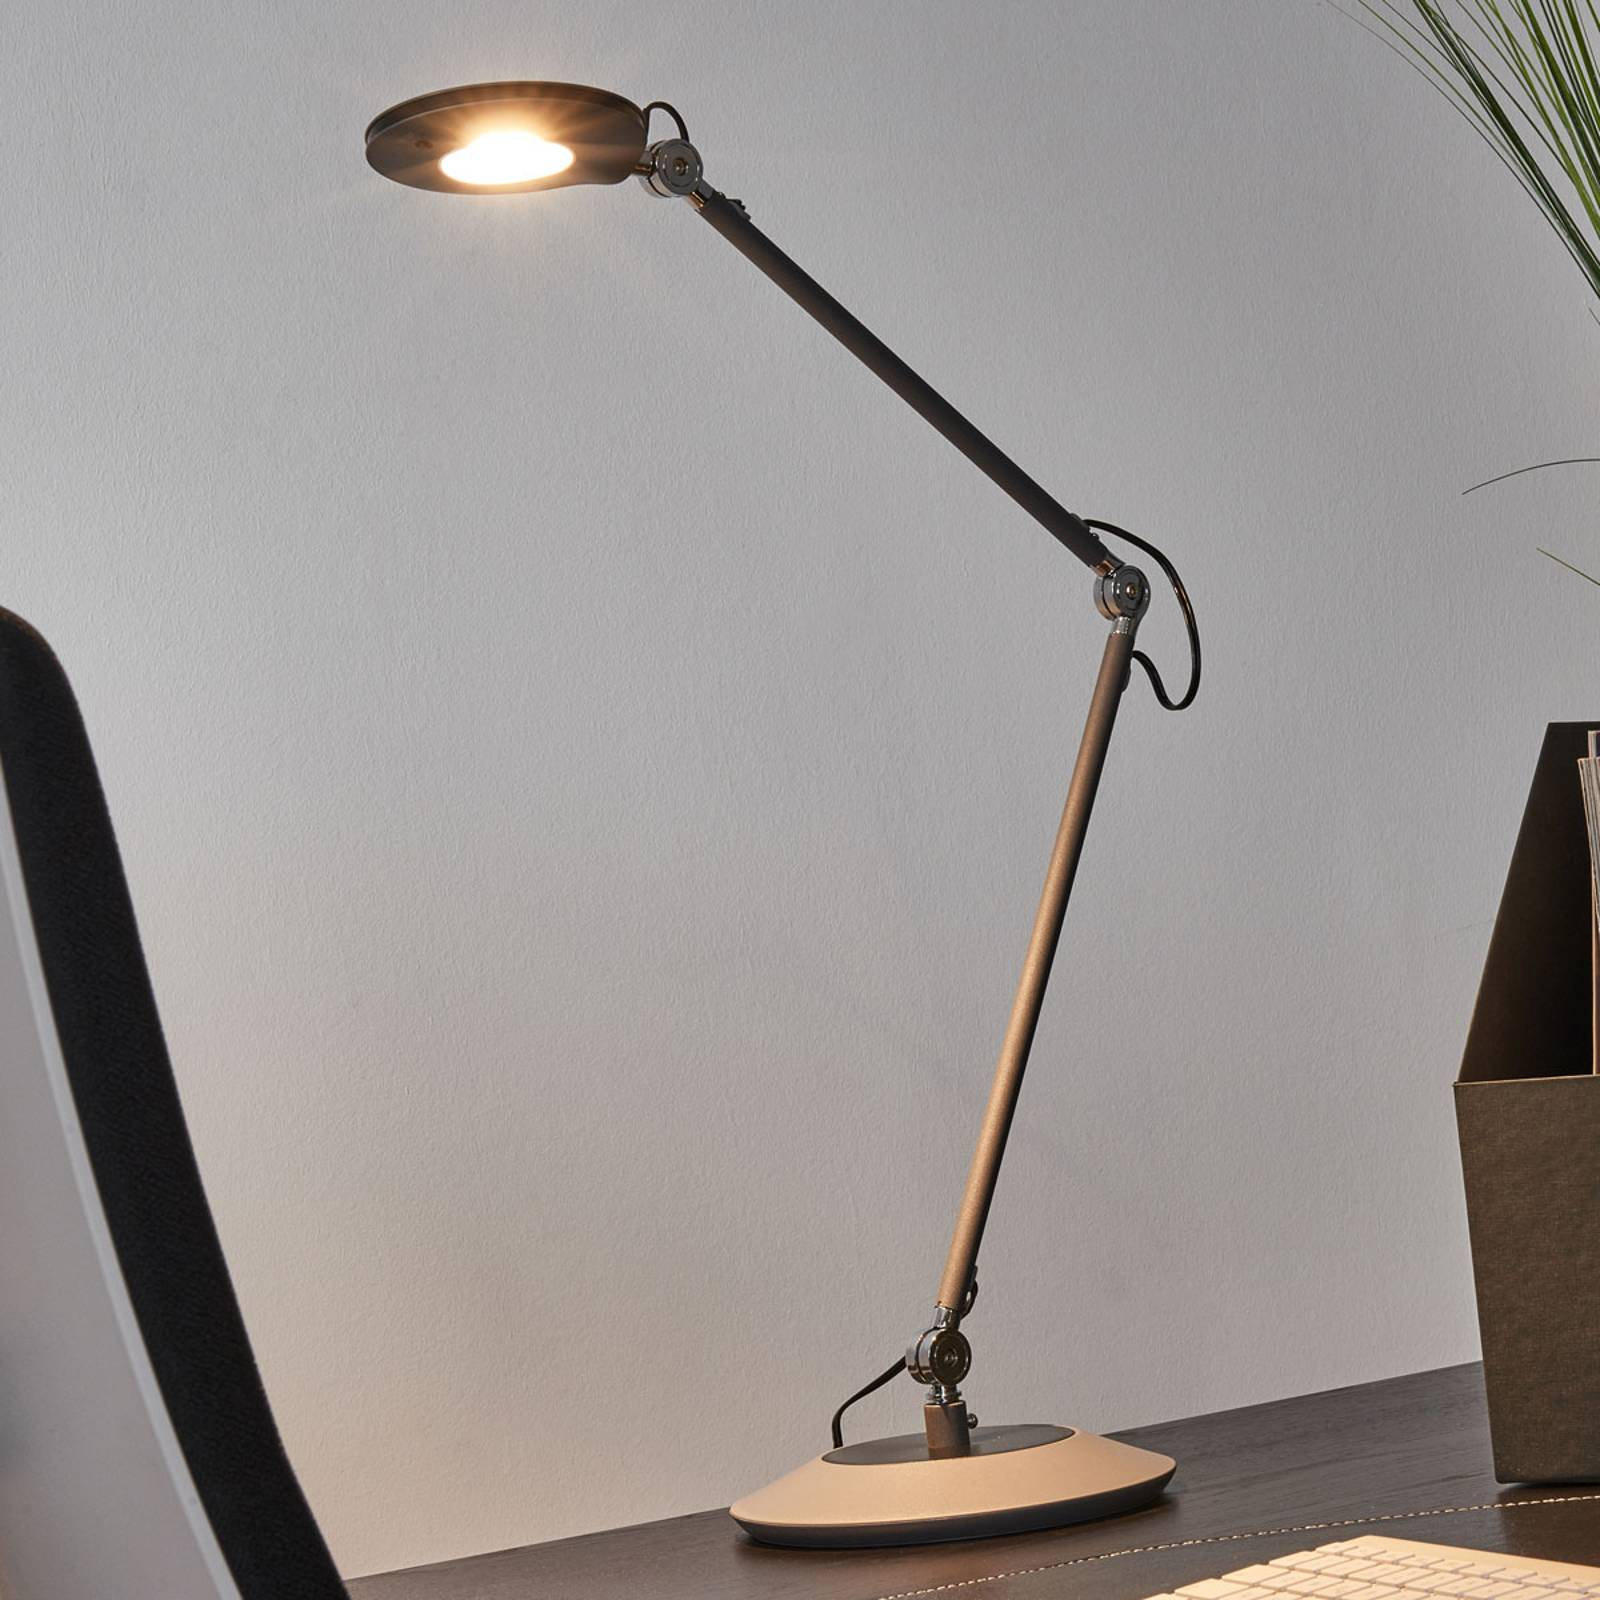 Anthracite-coloured LED table lamp Roderic from Trio Lighting